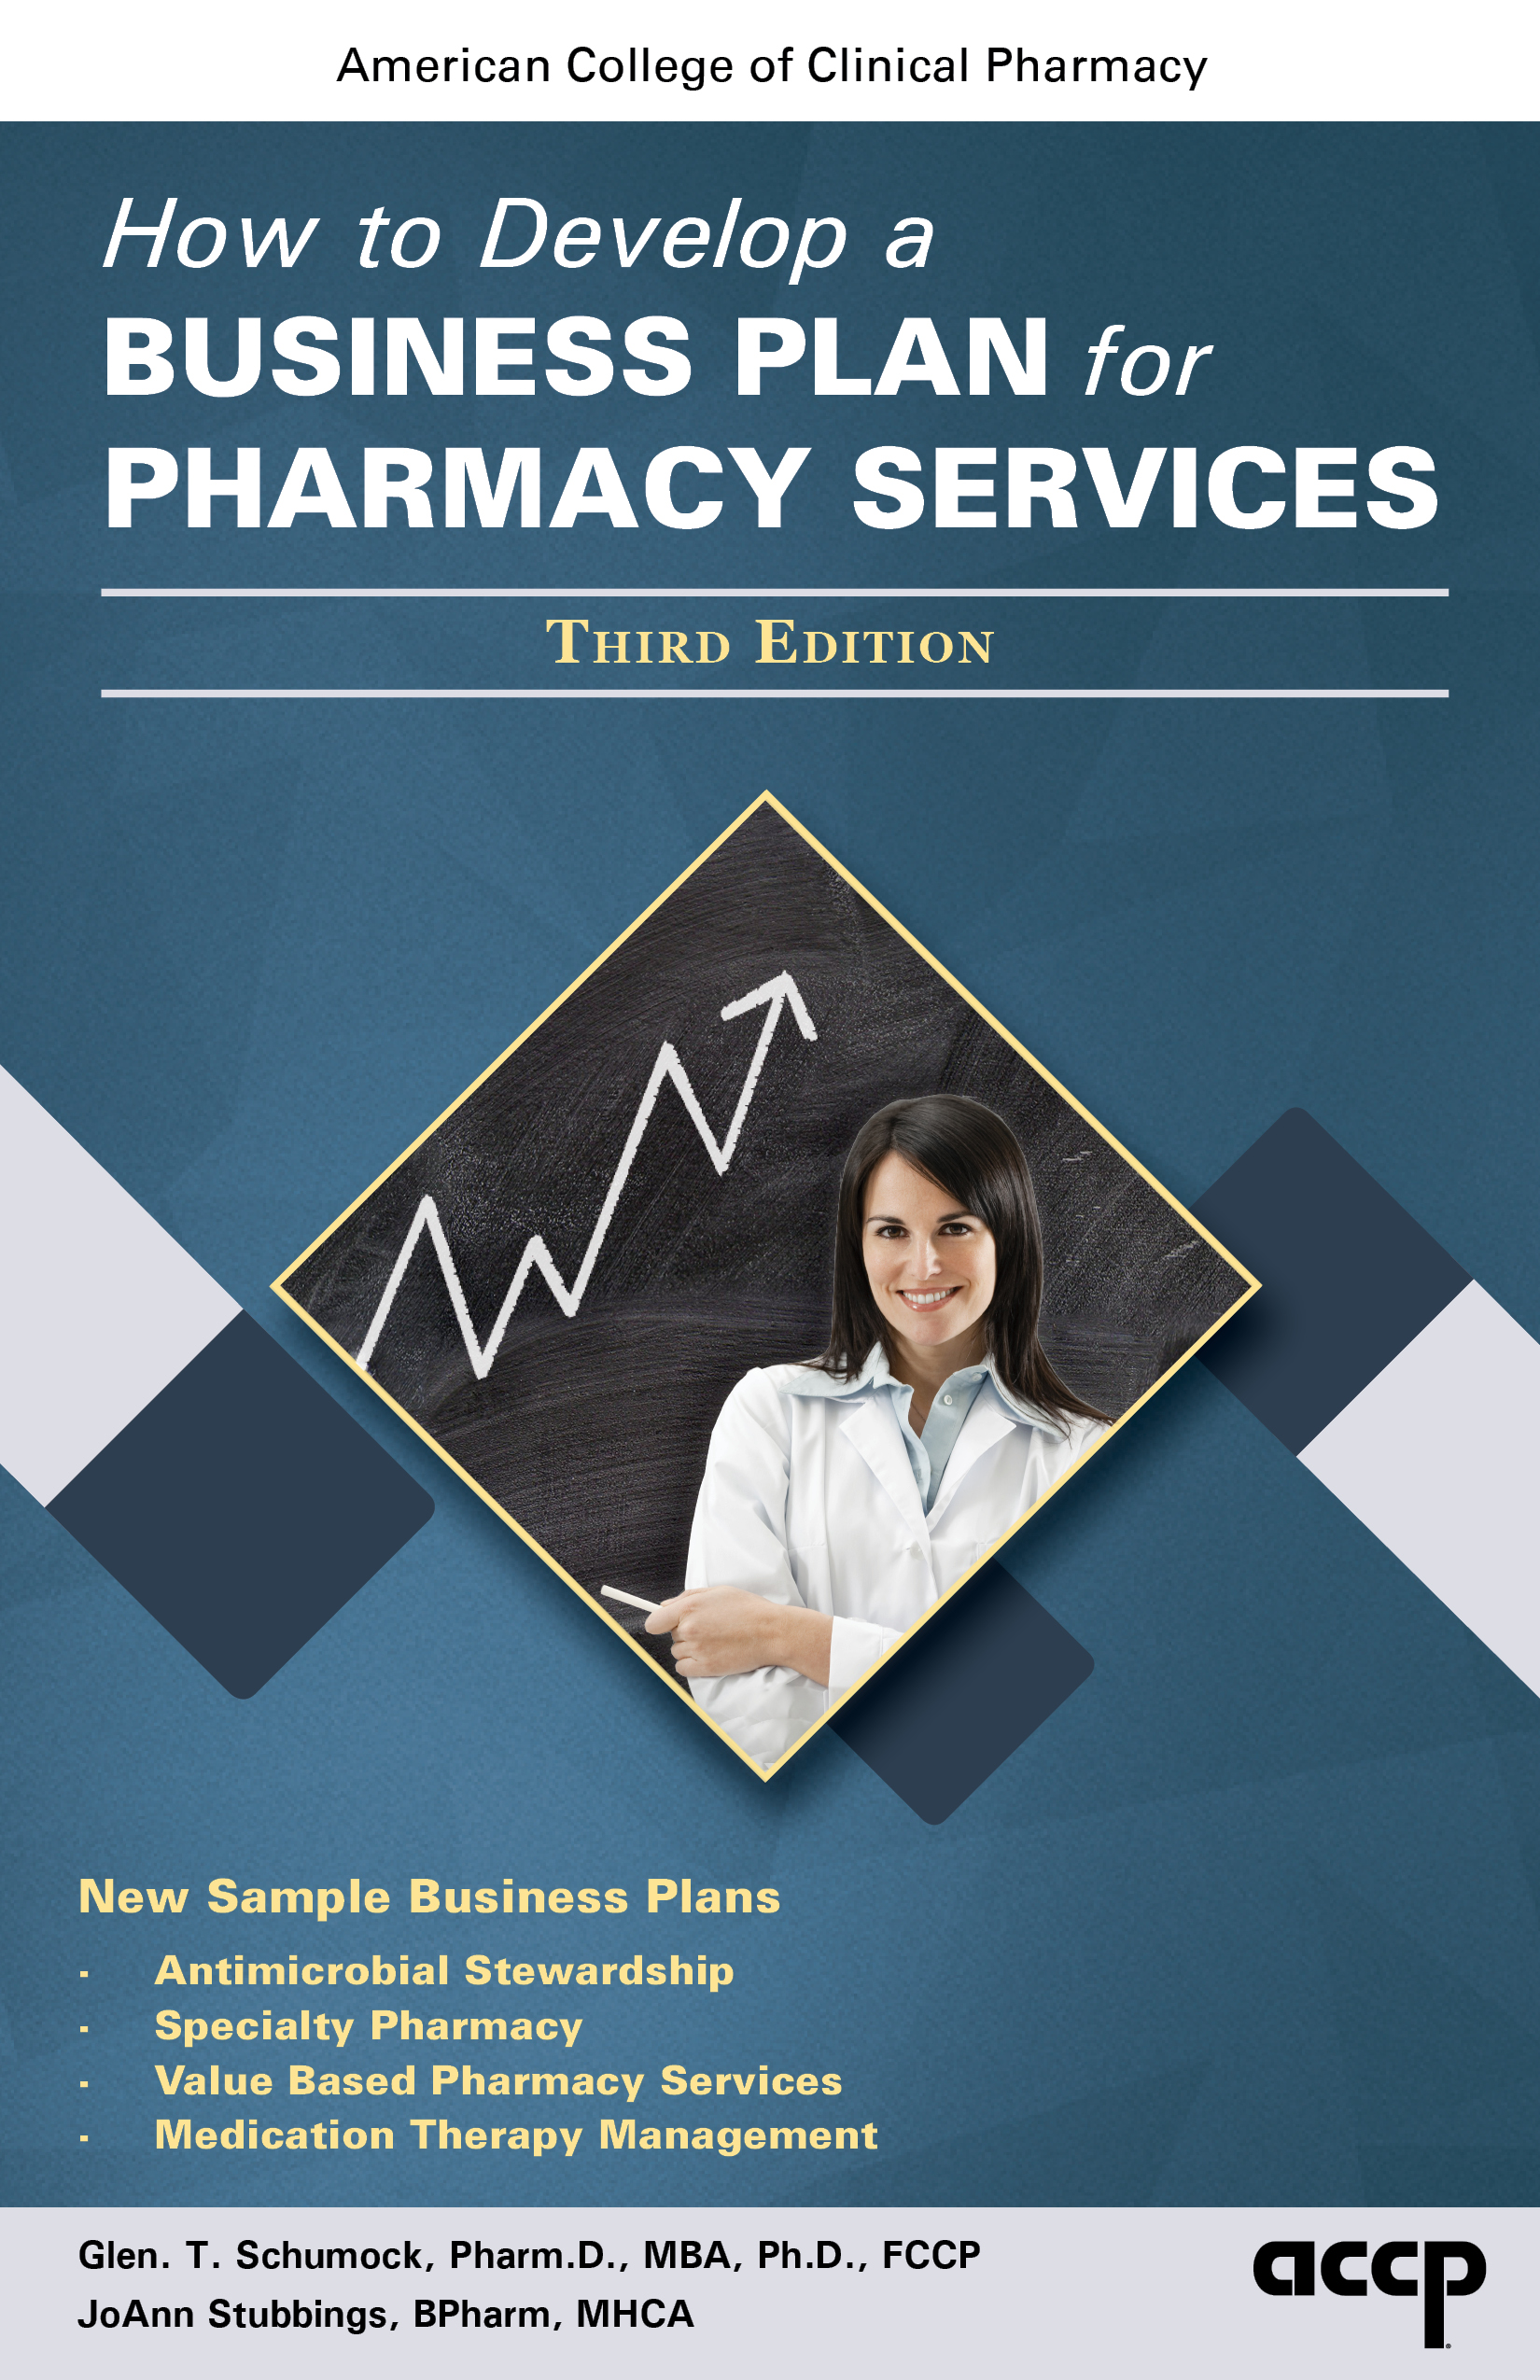 How to Develop a Business Plan for Pharmacy Services, Third